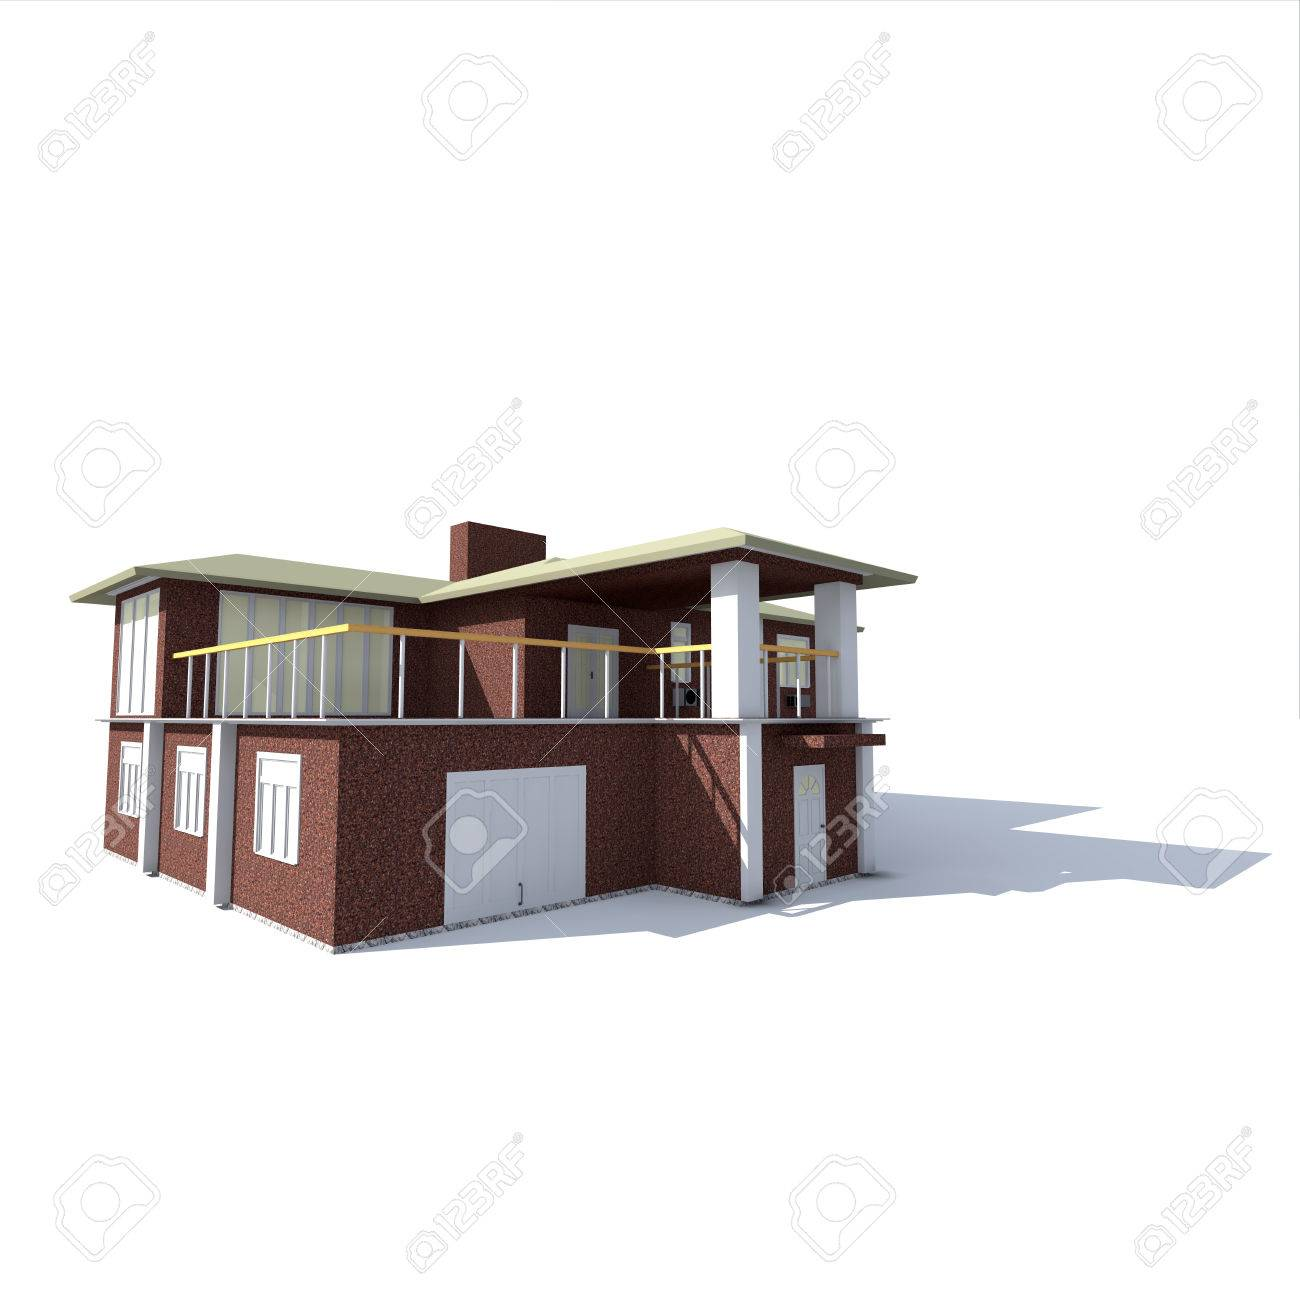 The Two Storey House Made Of Natural Stone With Balconies On Stock Photo Picture And Royalty Free Image Image 29124240